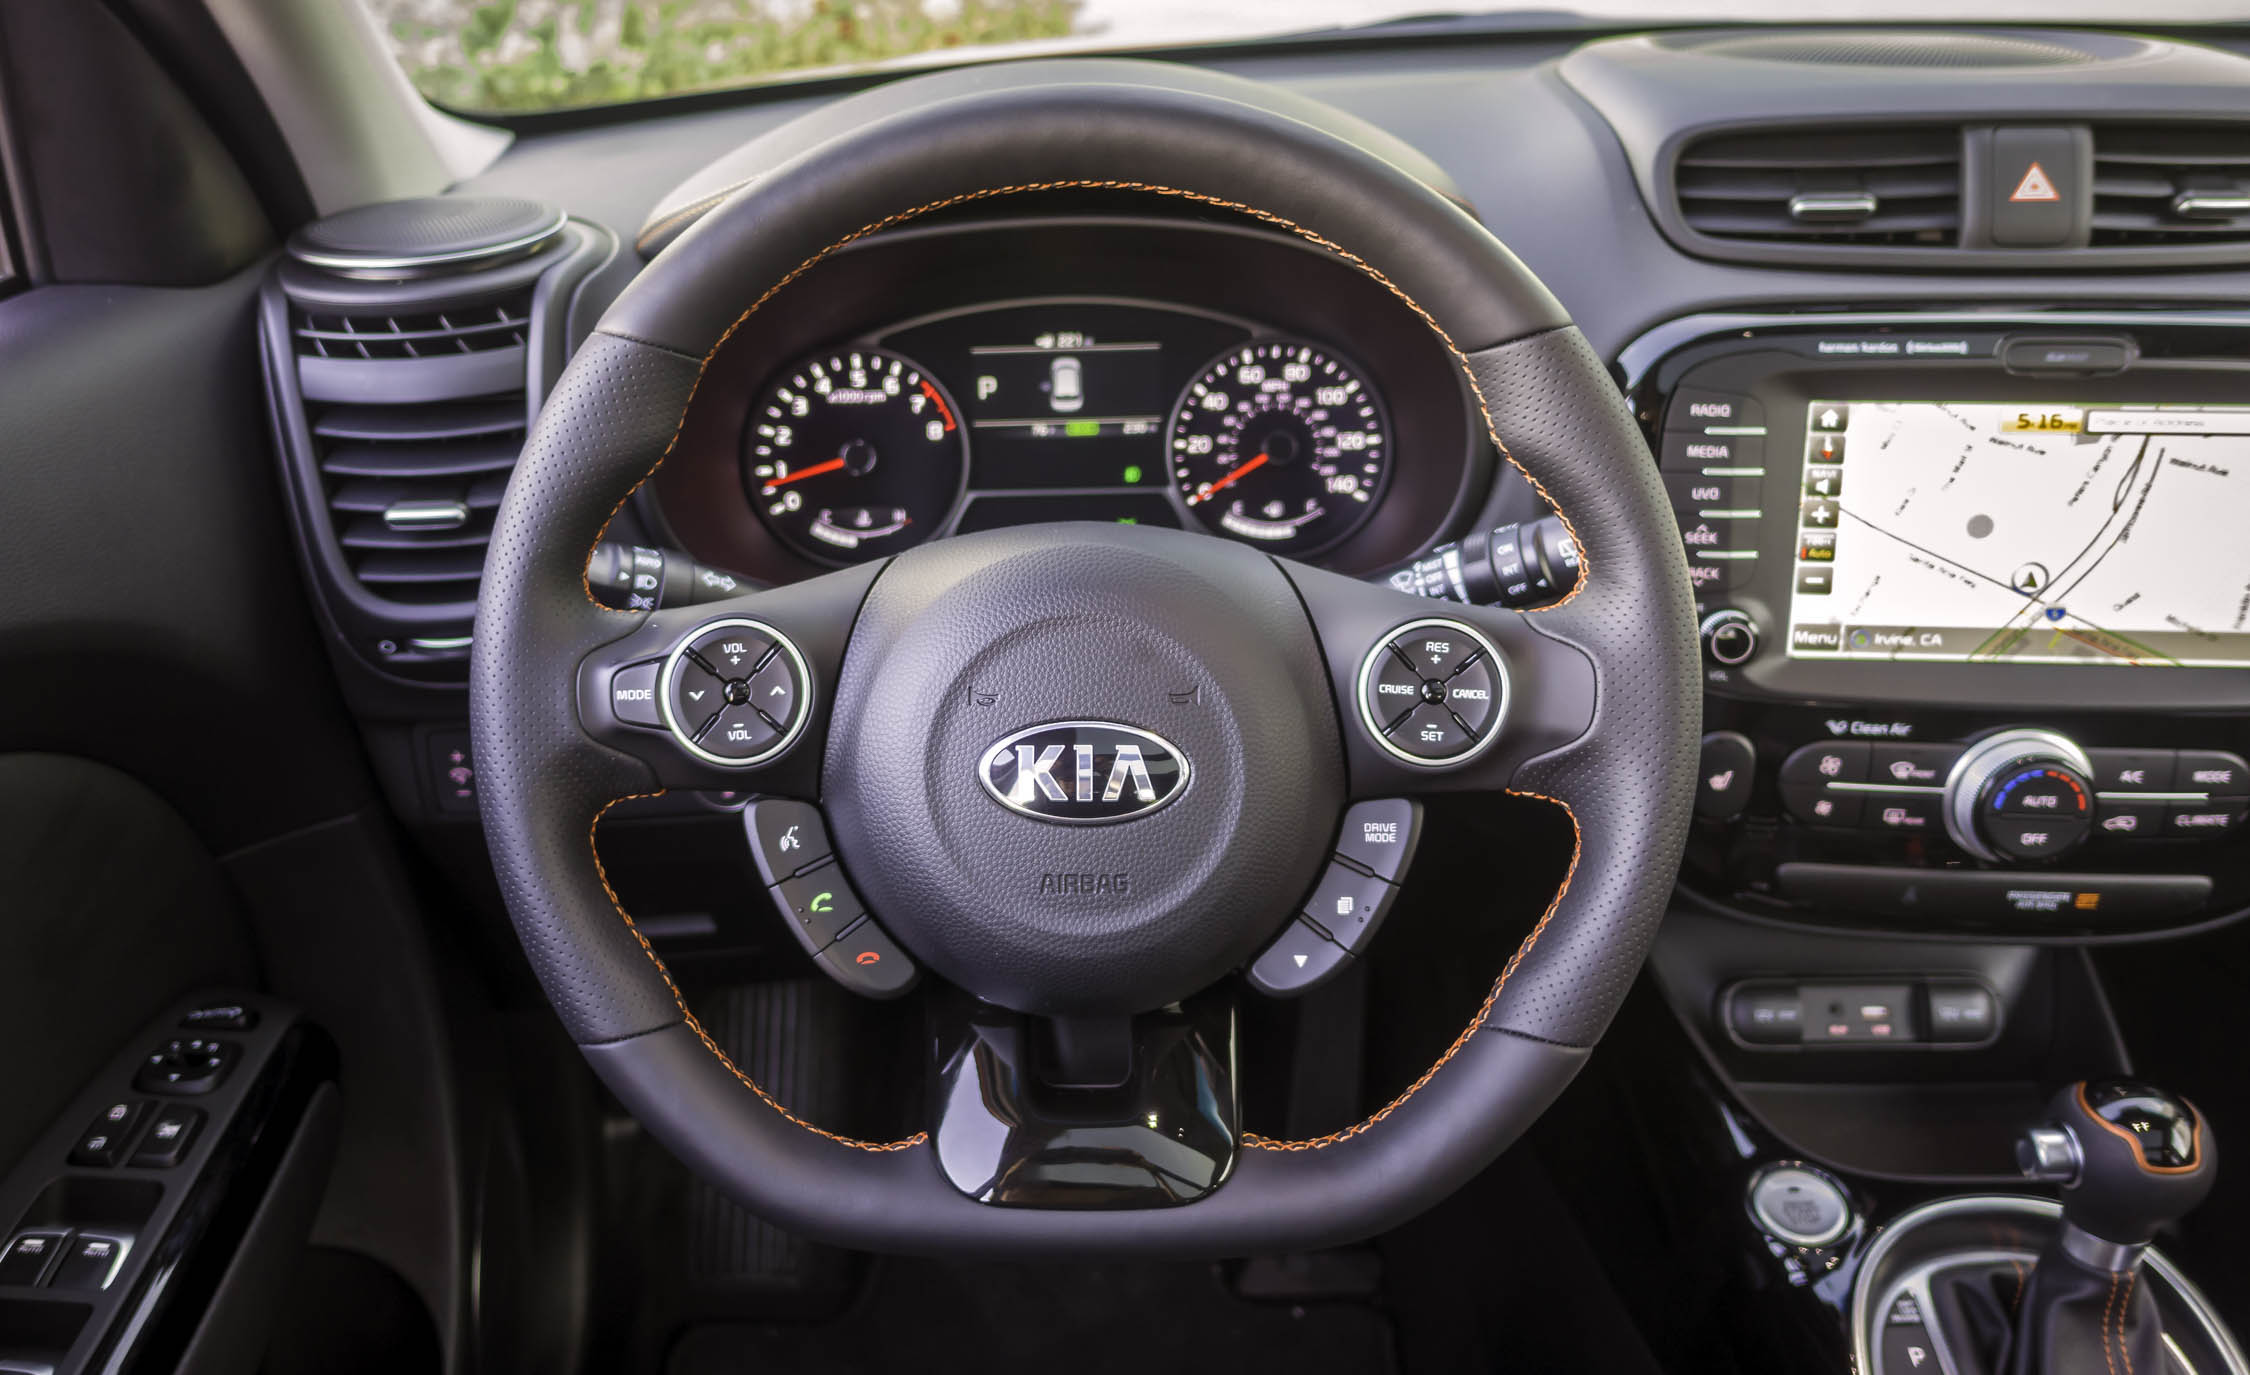 2017 Kia Soul Turbo Interior View Cockpit Steering Wheel (View 7 of 15)